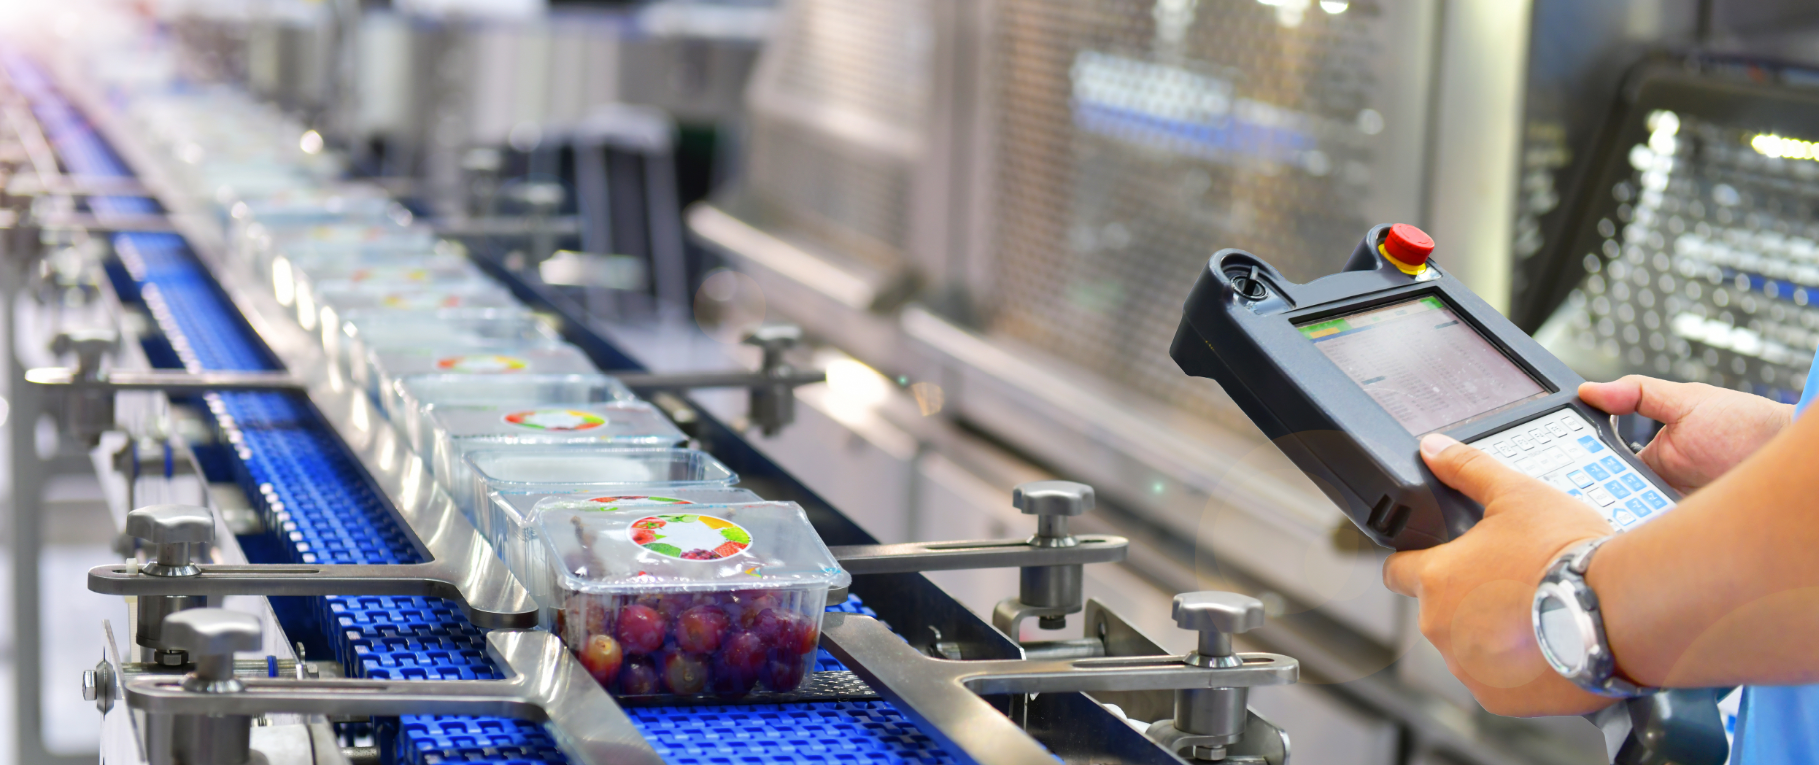 Here are 6 steps plant managers and facility owners should take to ensure the safety of manufacturing employees during the Coronavirus pandemic.